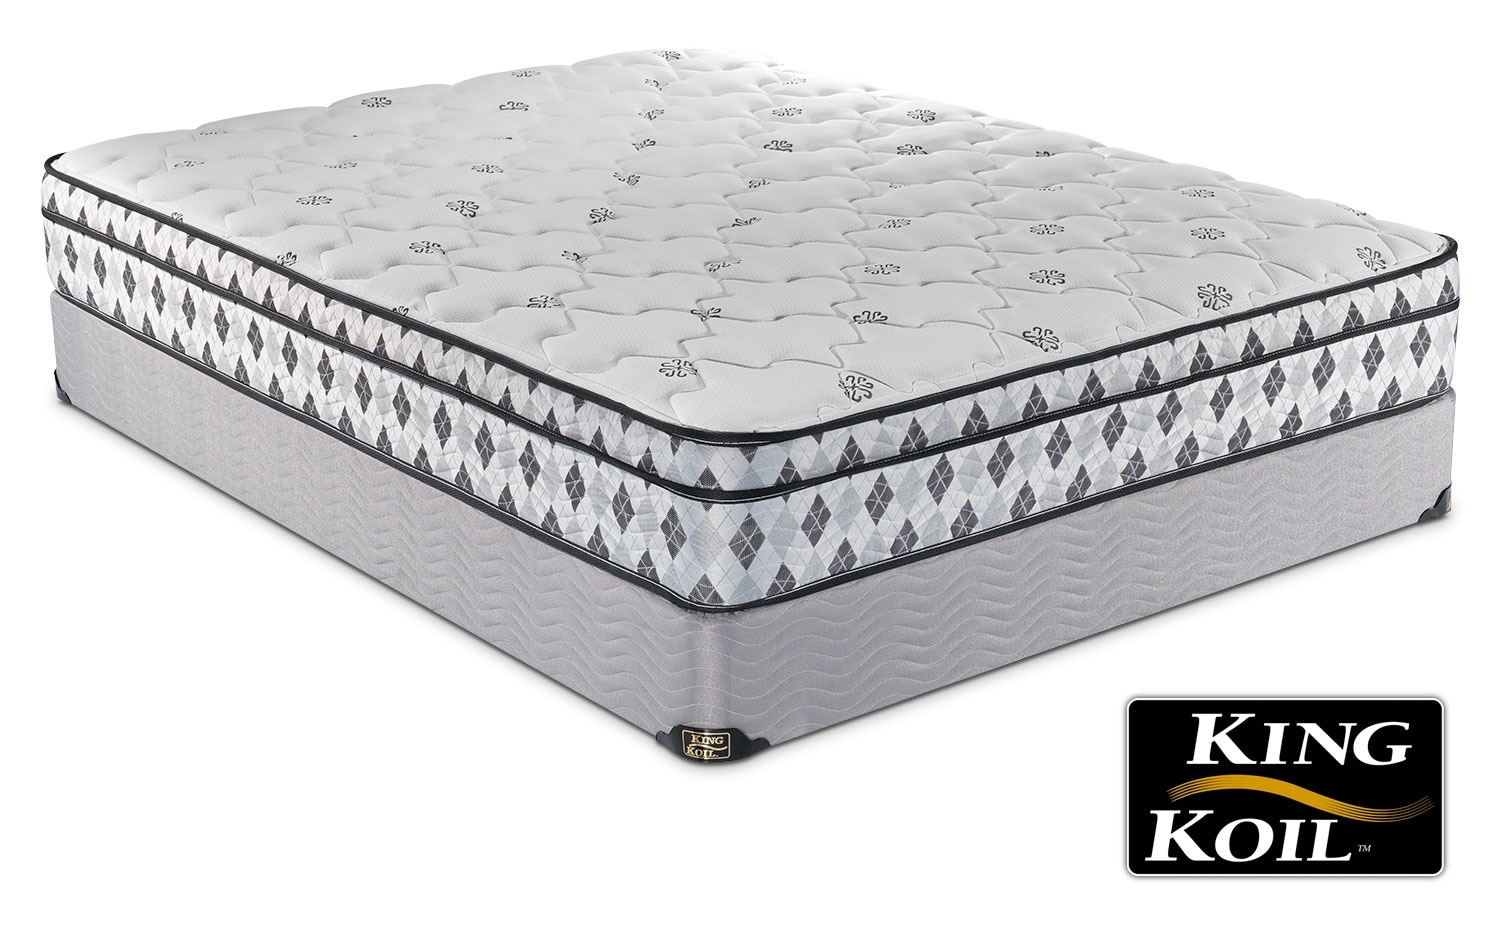 King Koil Silent Night Queen Mattress/Boxspring Set